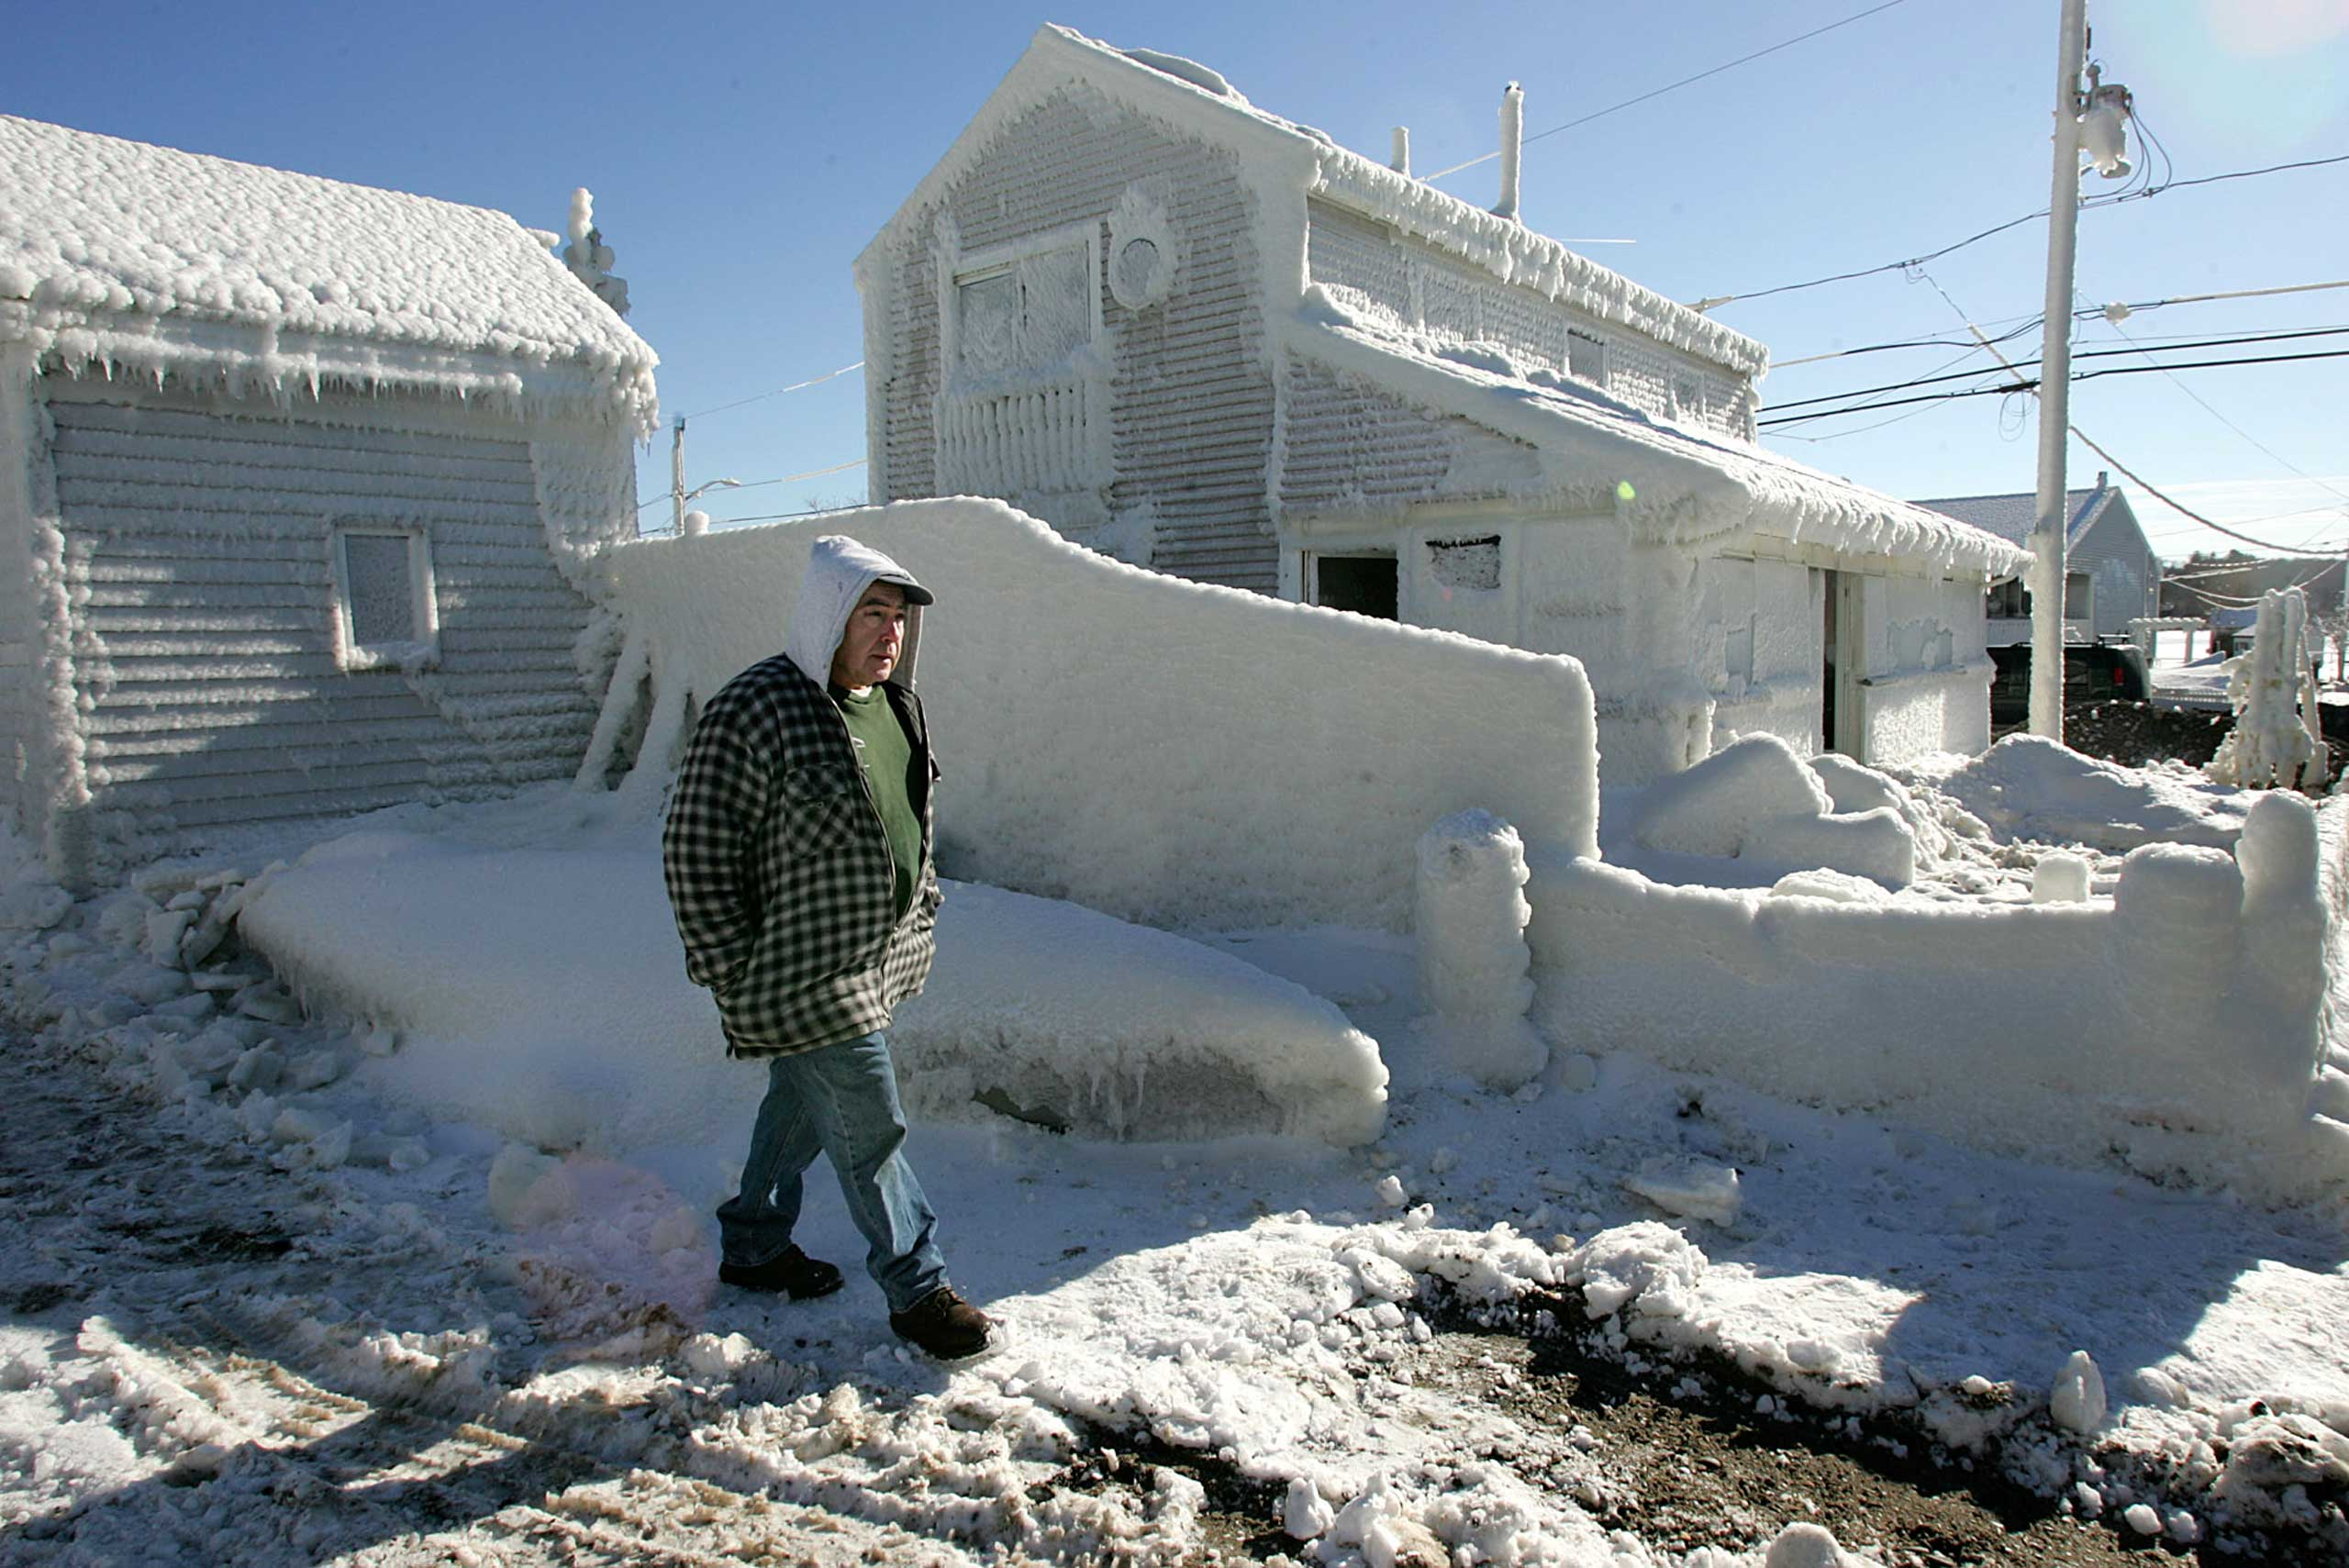 <b>The Blizzard of 2005 (Jan. 20-24, 2005)</b> Snowfall blanketed the Northeast, with areas around Boston reporting 3-5 inches of snowfall per hour and totalling 43 inches. Here, Sam Germaine walks past the frozen entrance to his home in Hull, Mass. on Jan. 25, 2005.